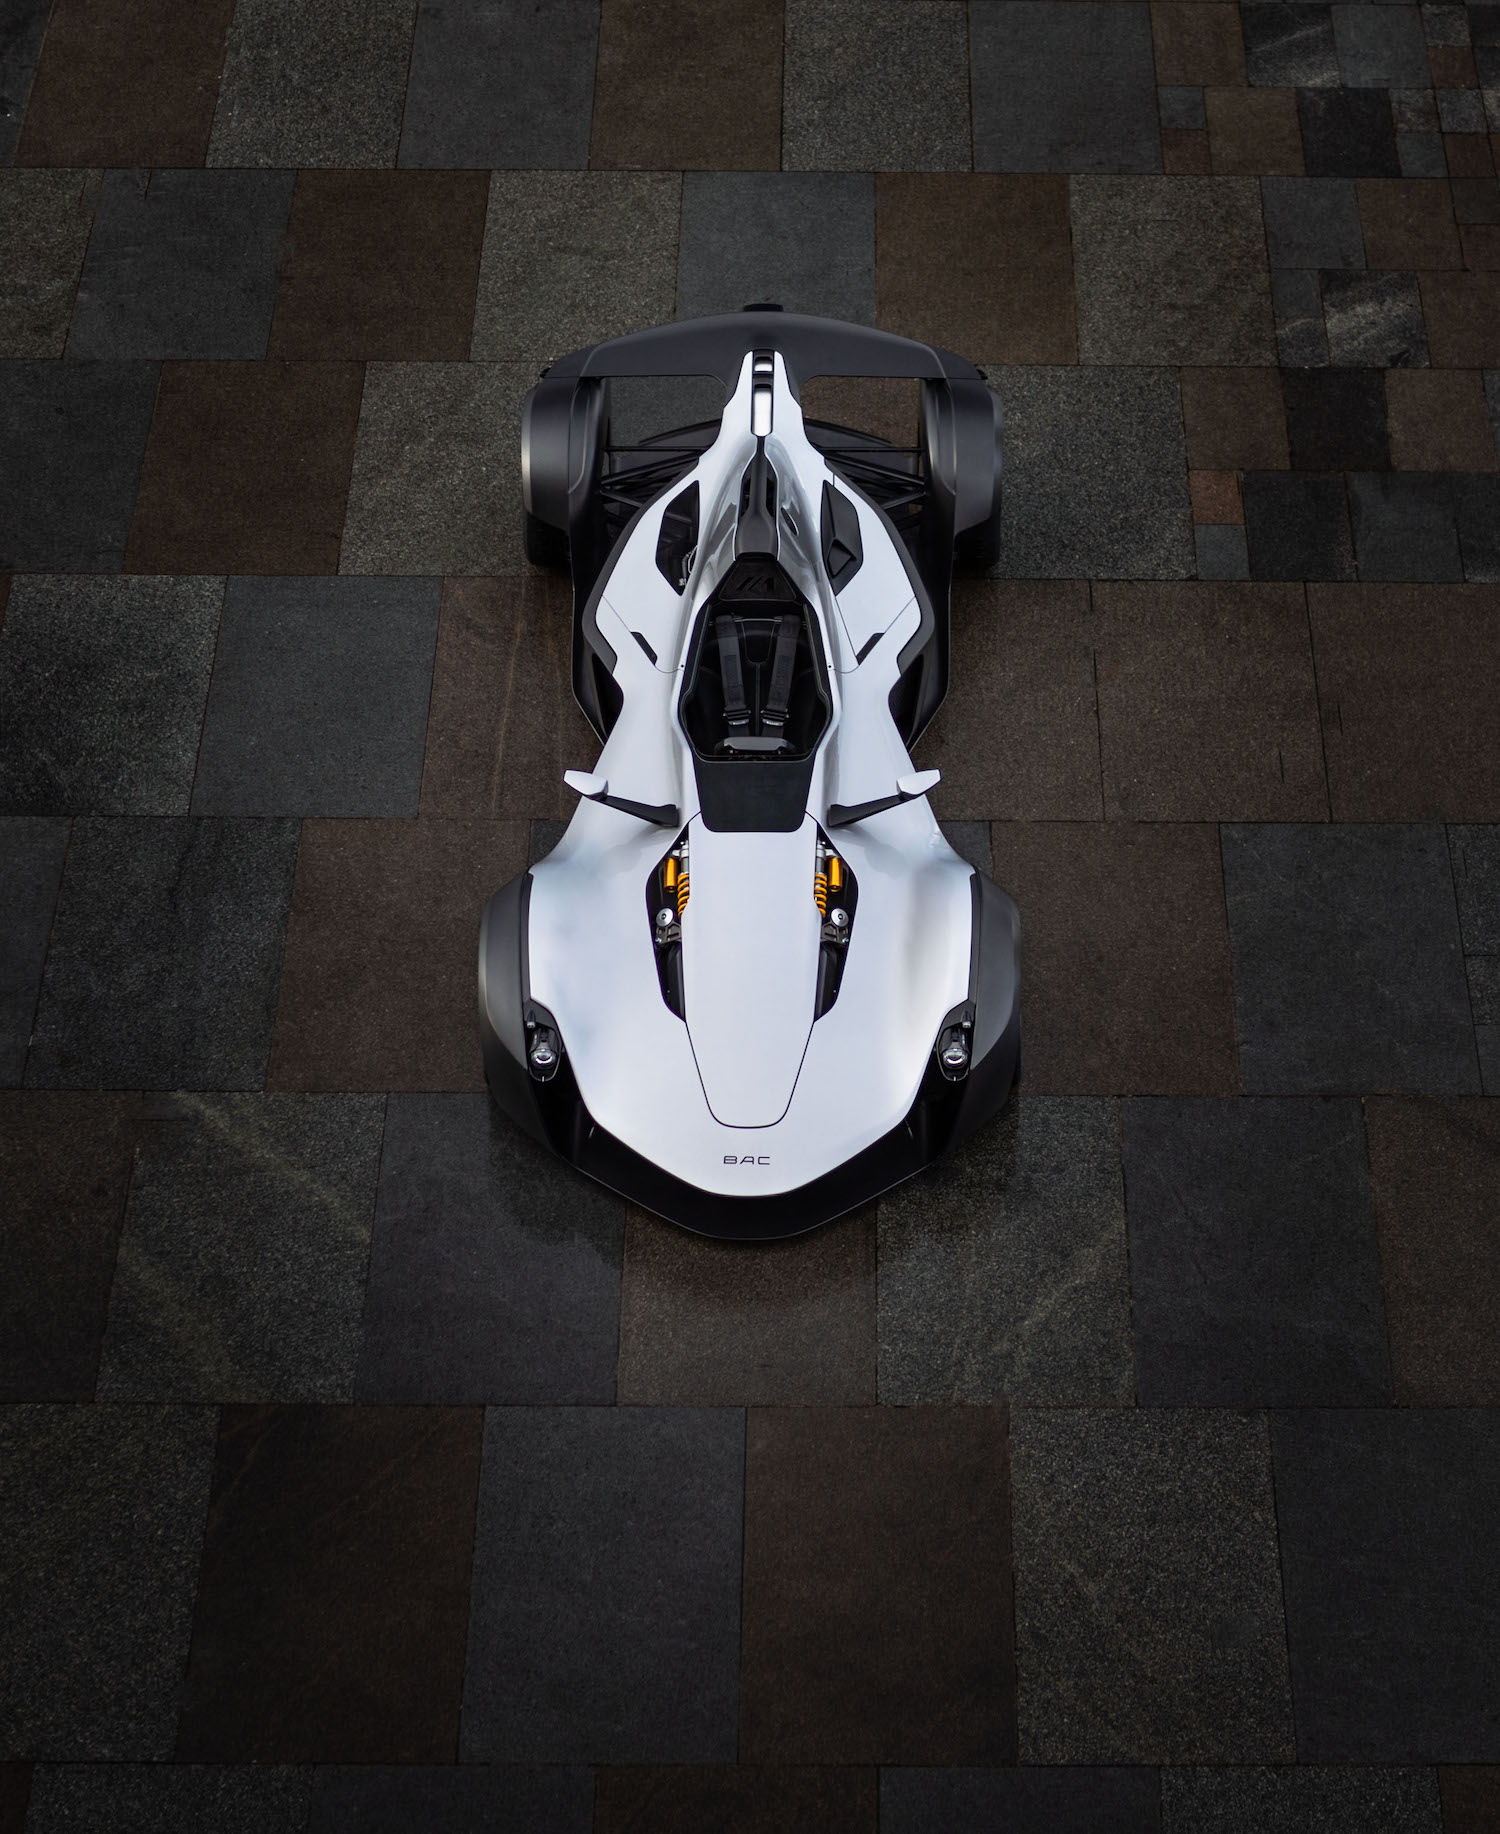 bac mono car front overhead